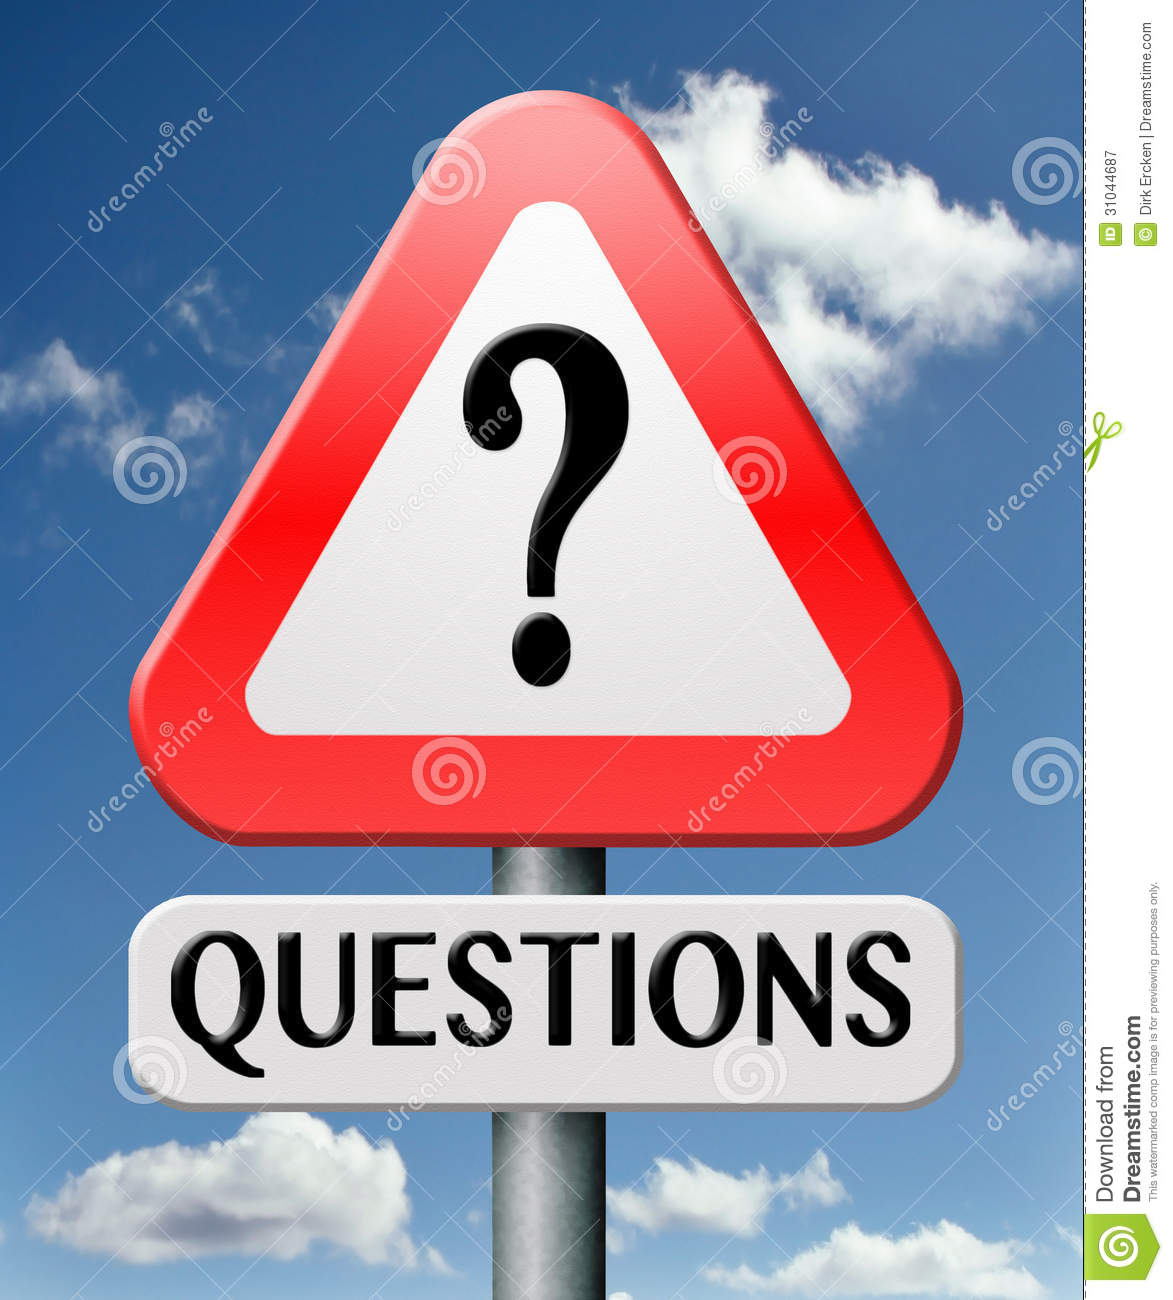 Frequently Asked Question Road Sign Royalty Free Stock